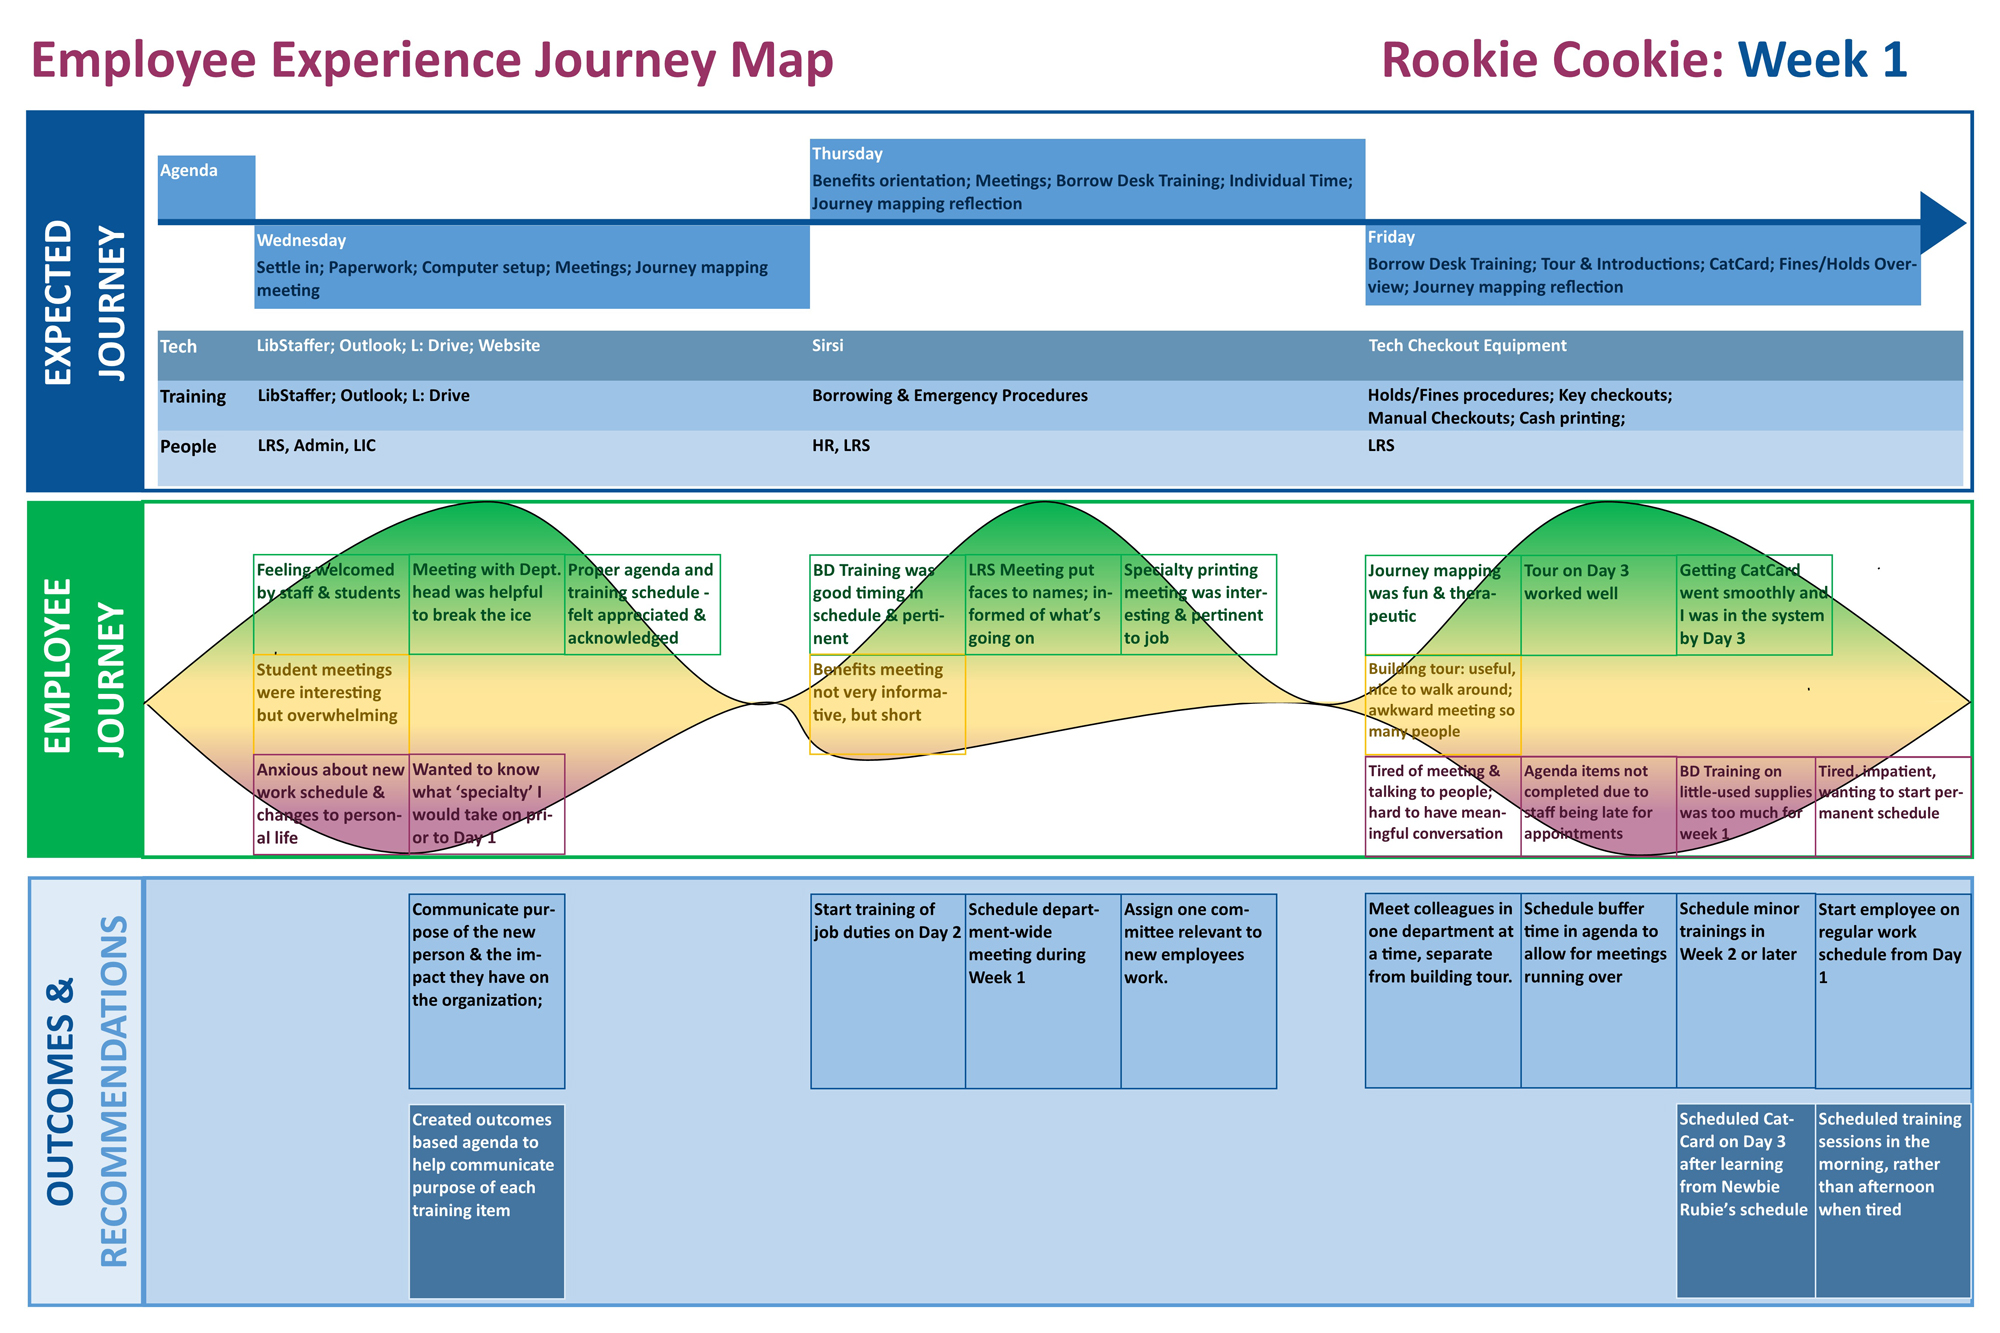 Figure 9. Employee experience journey map for Rookie Cookie's first week, which only consisted of three days.